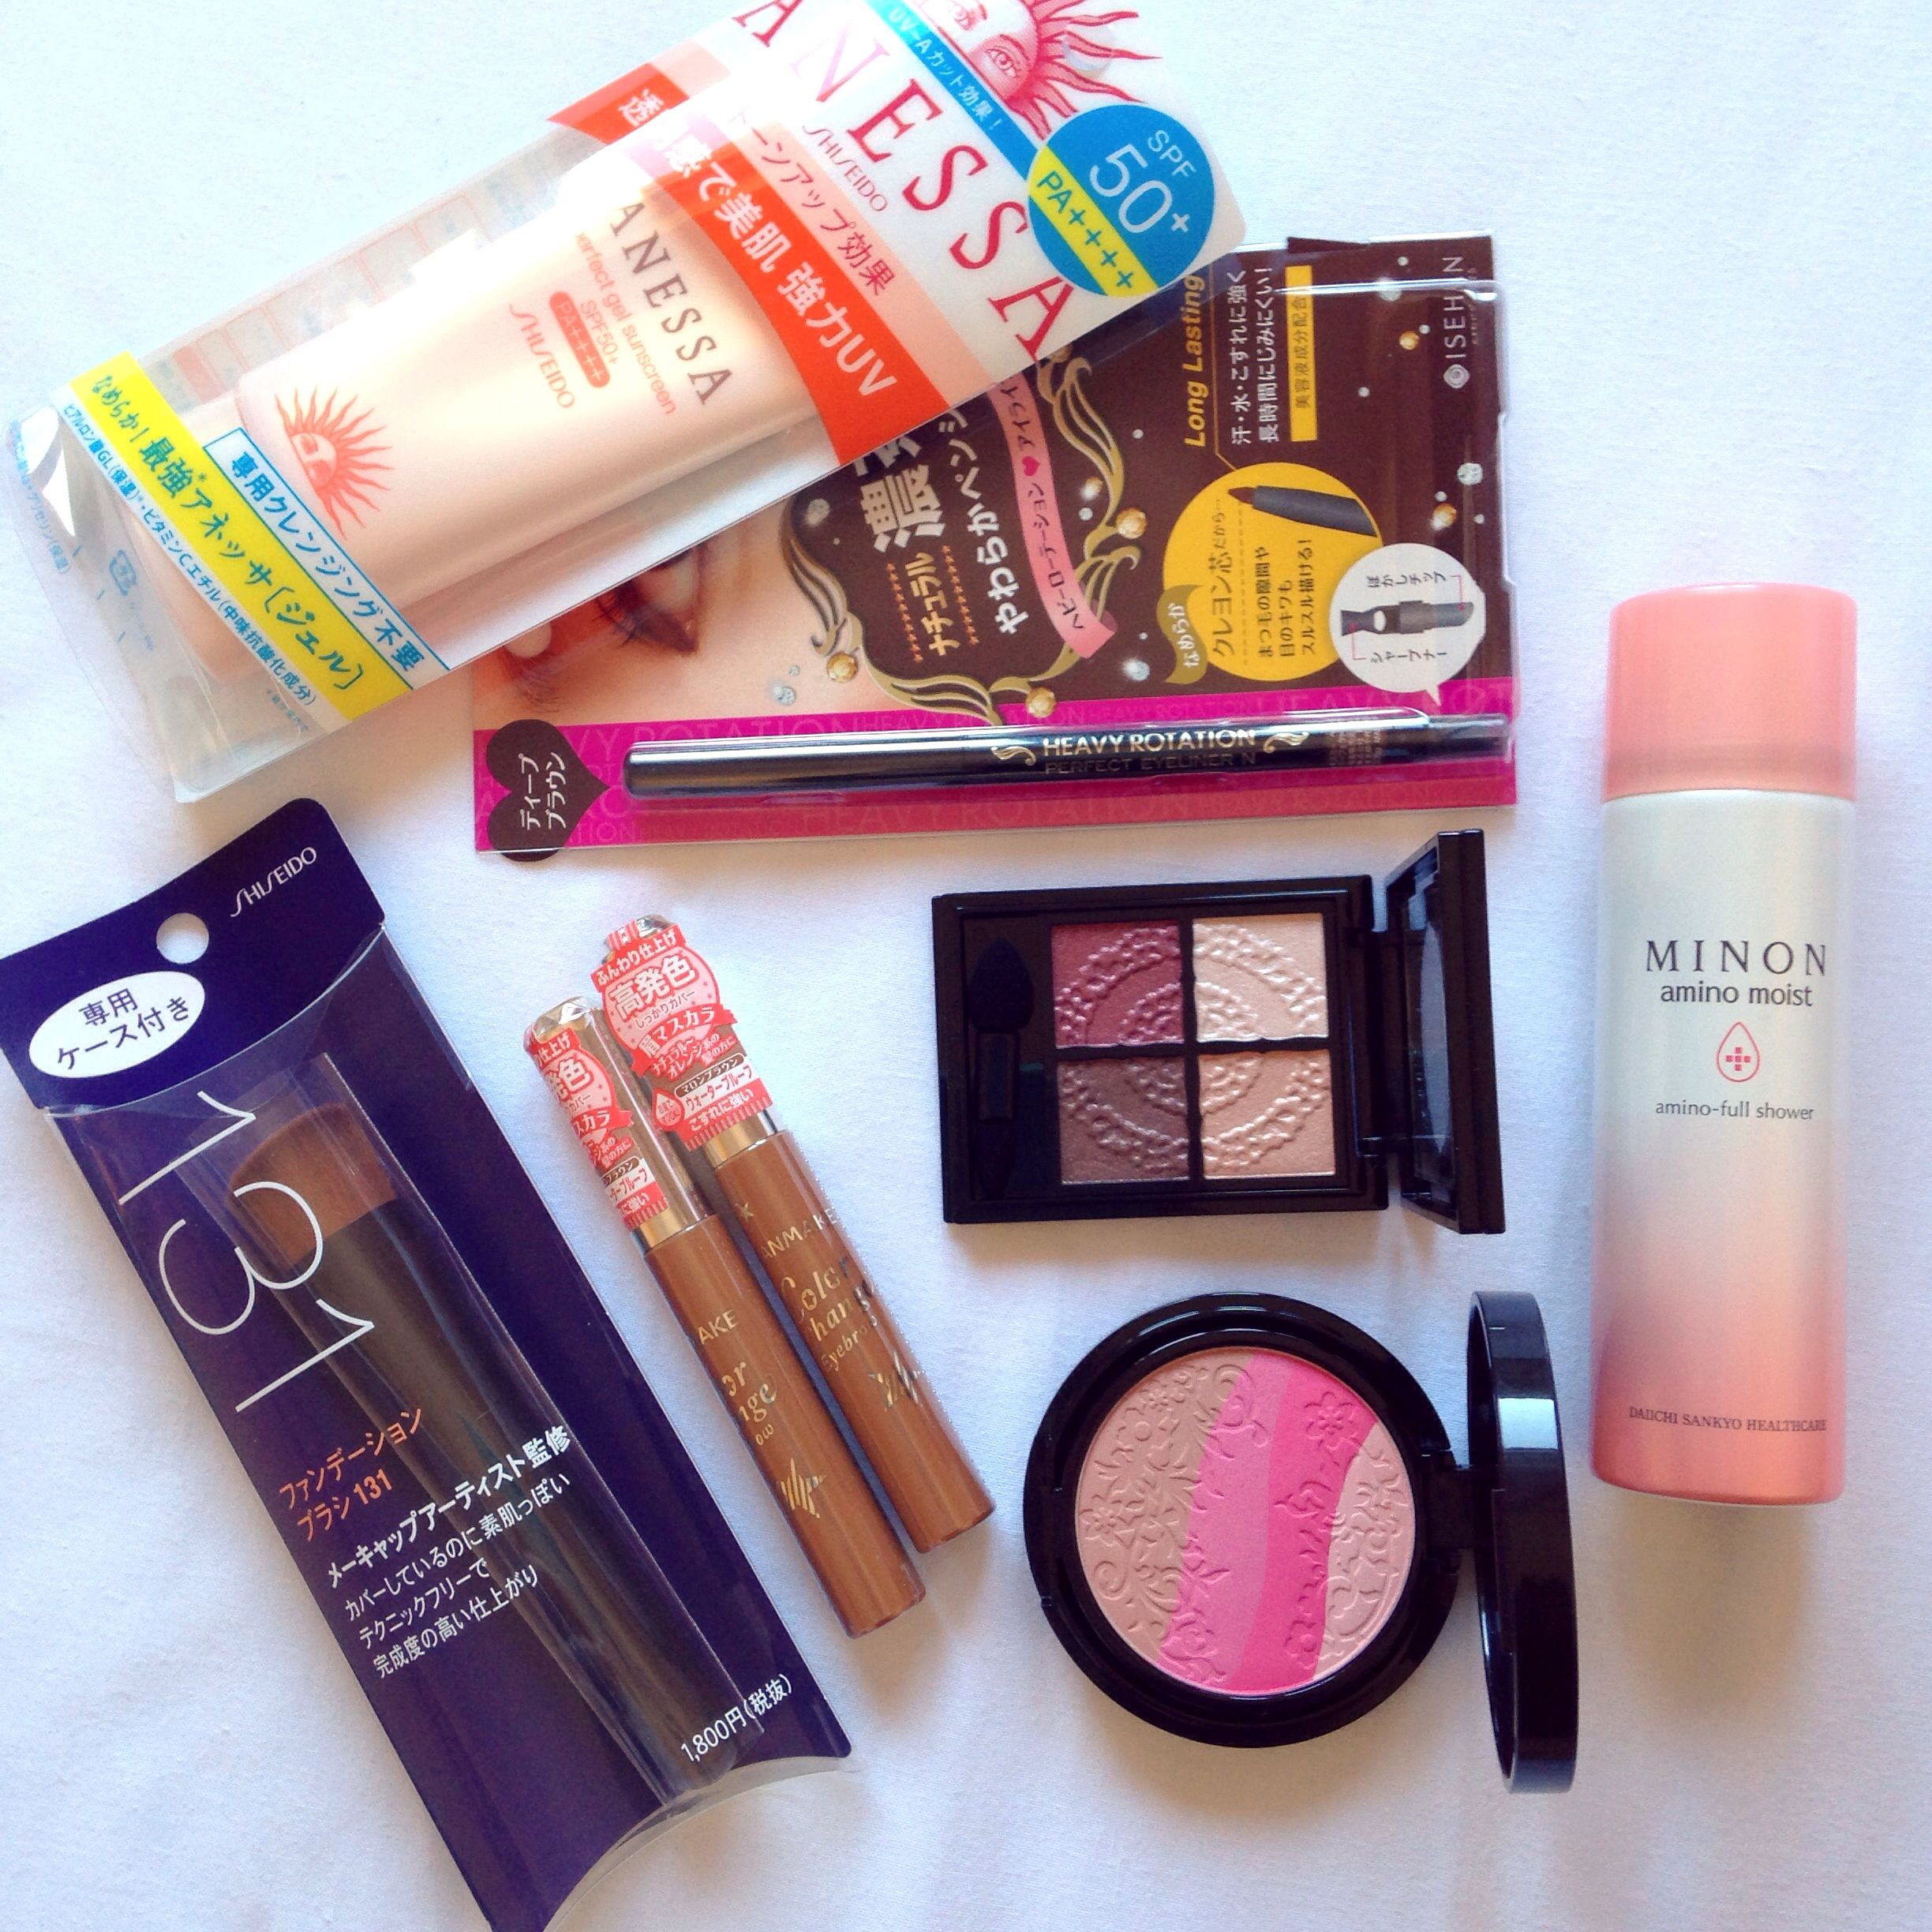 Japanese drugstore products from my first 2 days in Tokyo